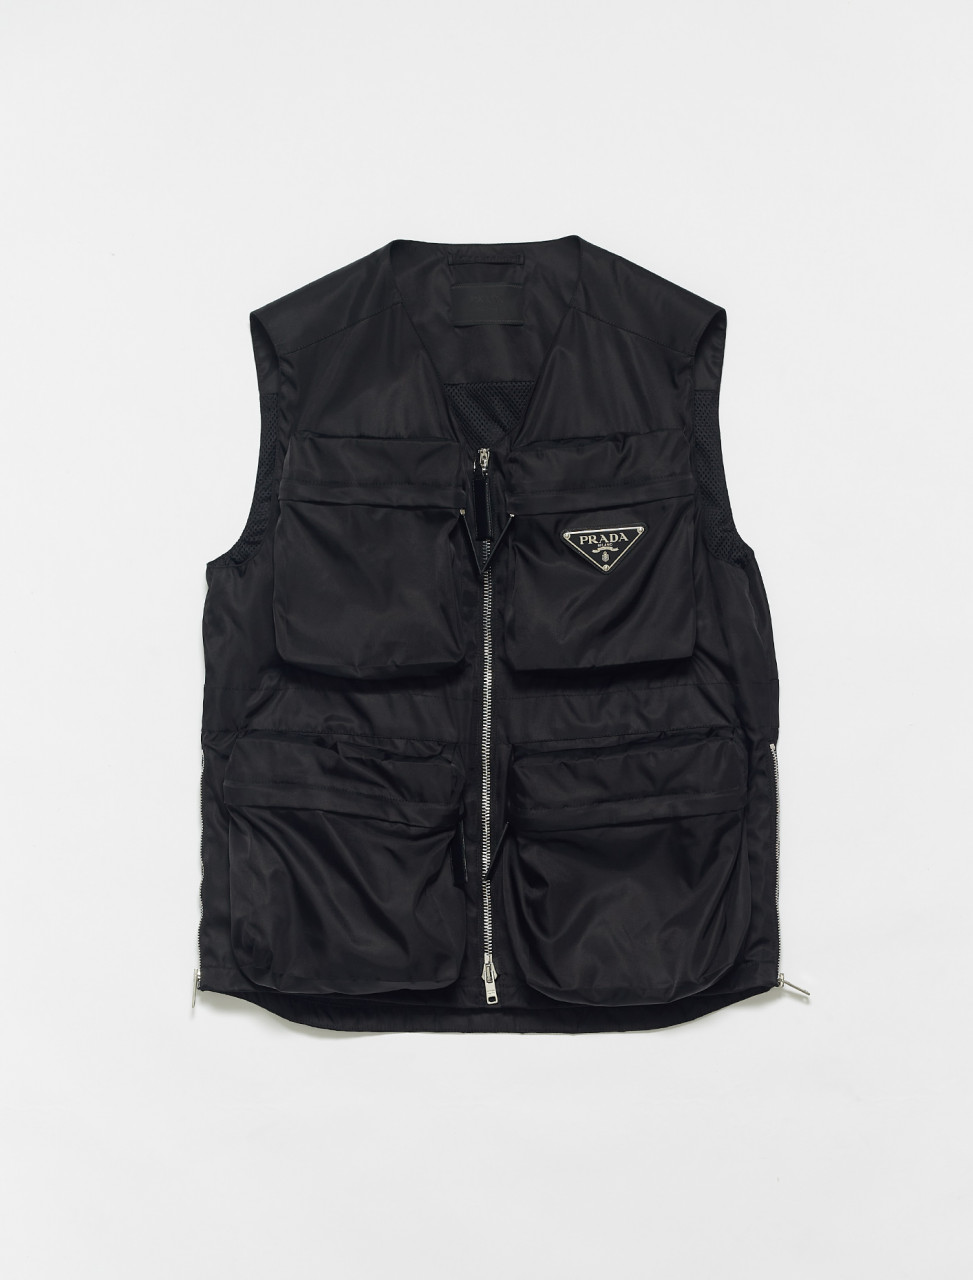 SGB653-F0002 PRADA RE NYLON VEST IN BLACK